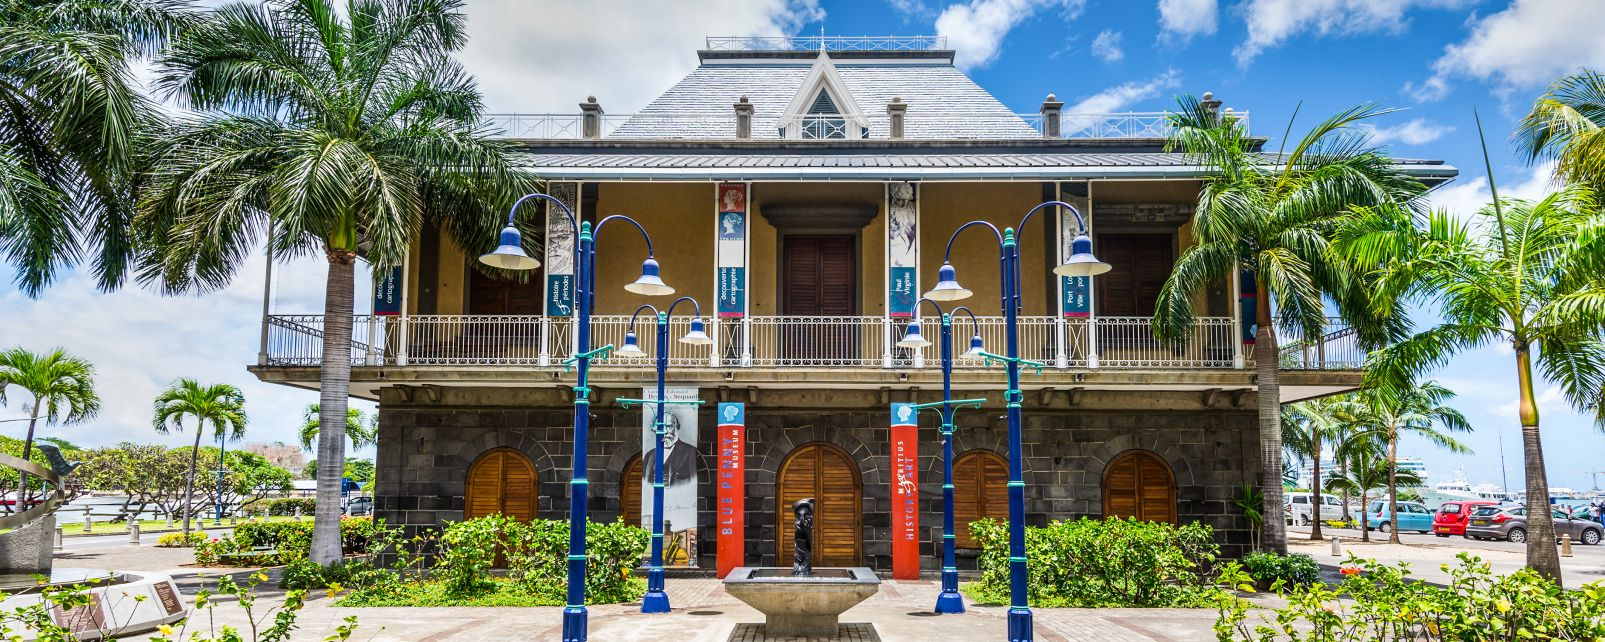 Le Blue Penny Museum, Museums, Mauritius